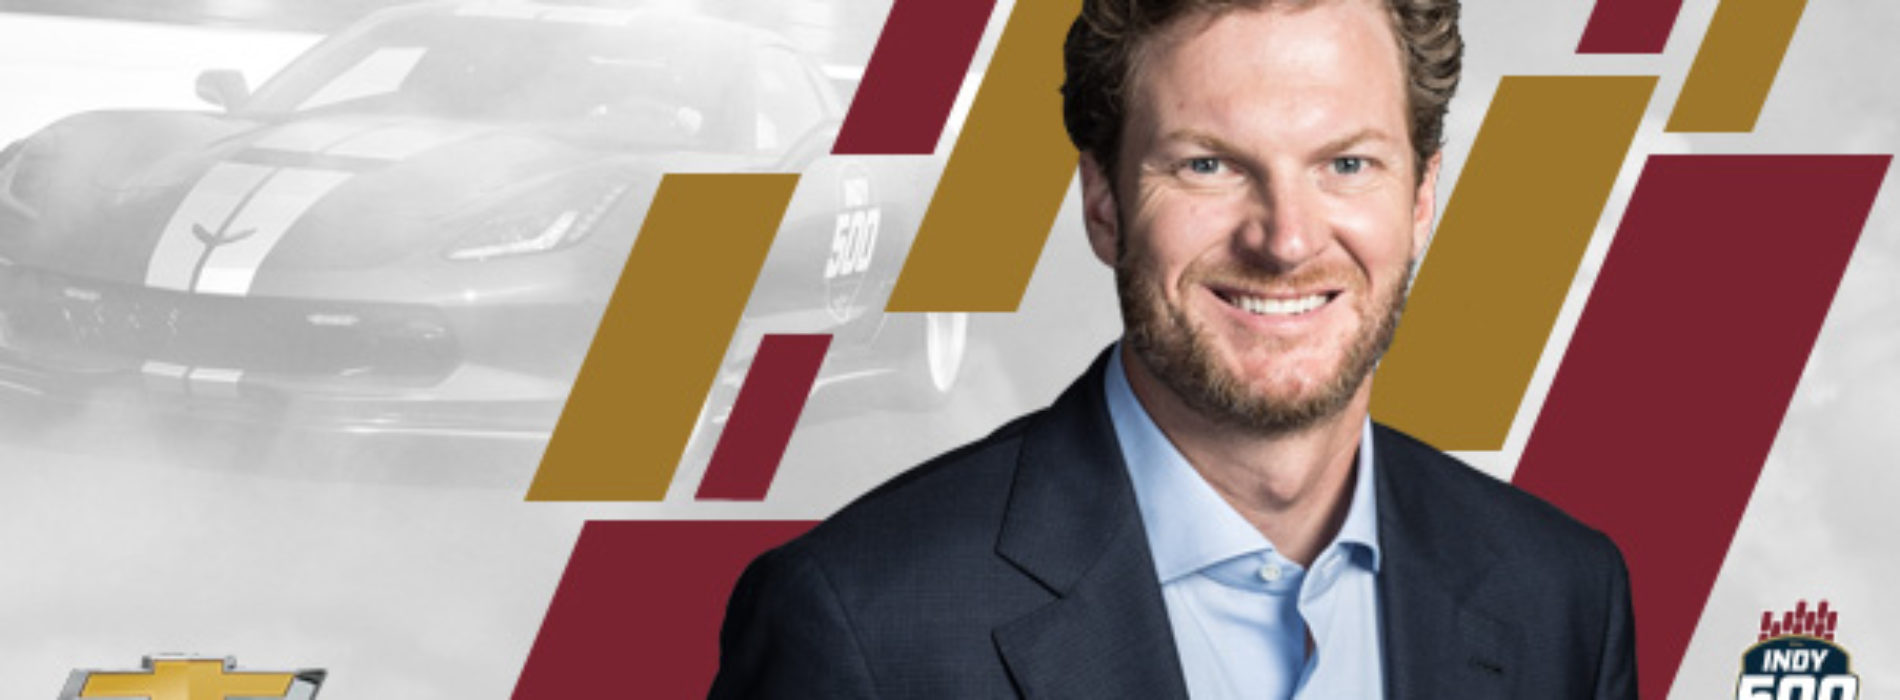 Dale Earnhardt Jr. To Drive 2019 Corvette Grand Sport Pace Car, Lead Field to Green Flag of 103rd Indianapolis 500